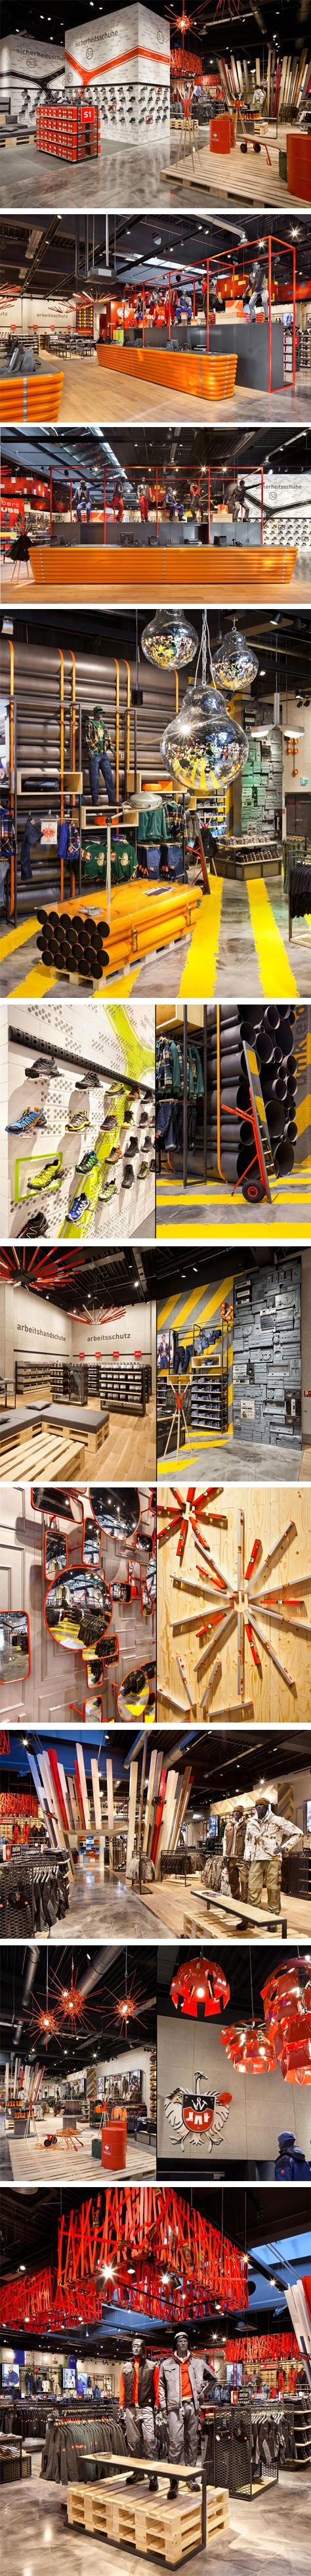 ENGELBERT STRAUSS workwear store by Plajer & Franz, Bergkirchen – Germany.